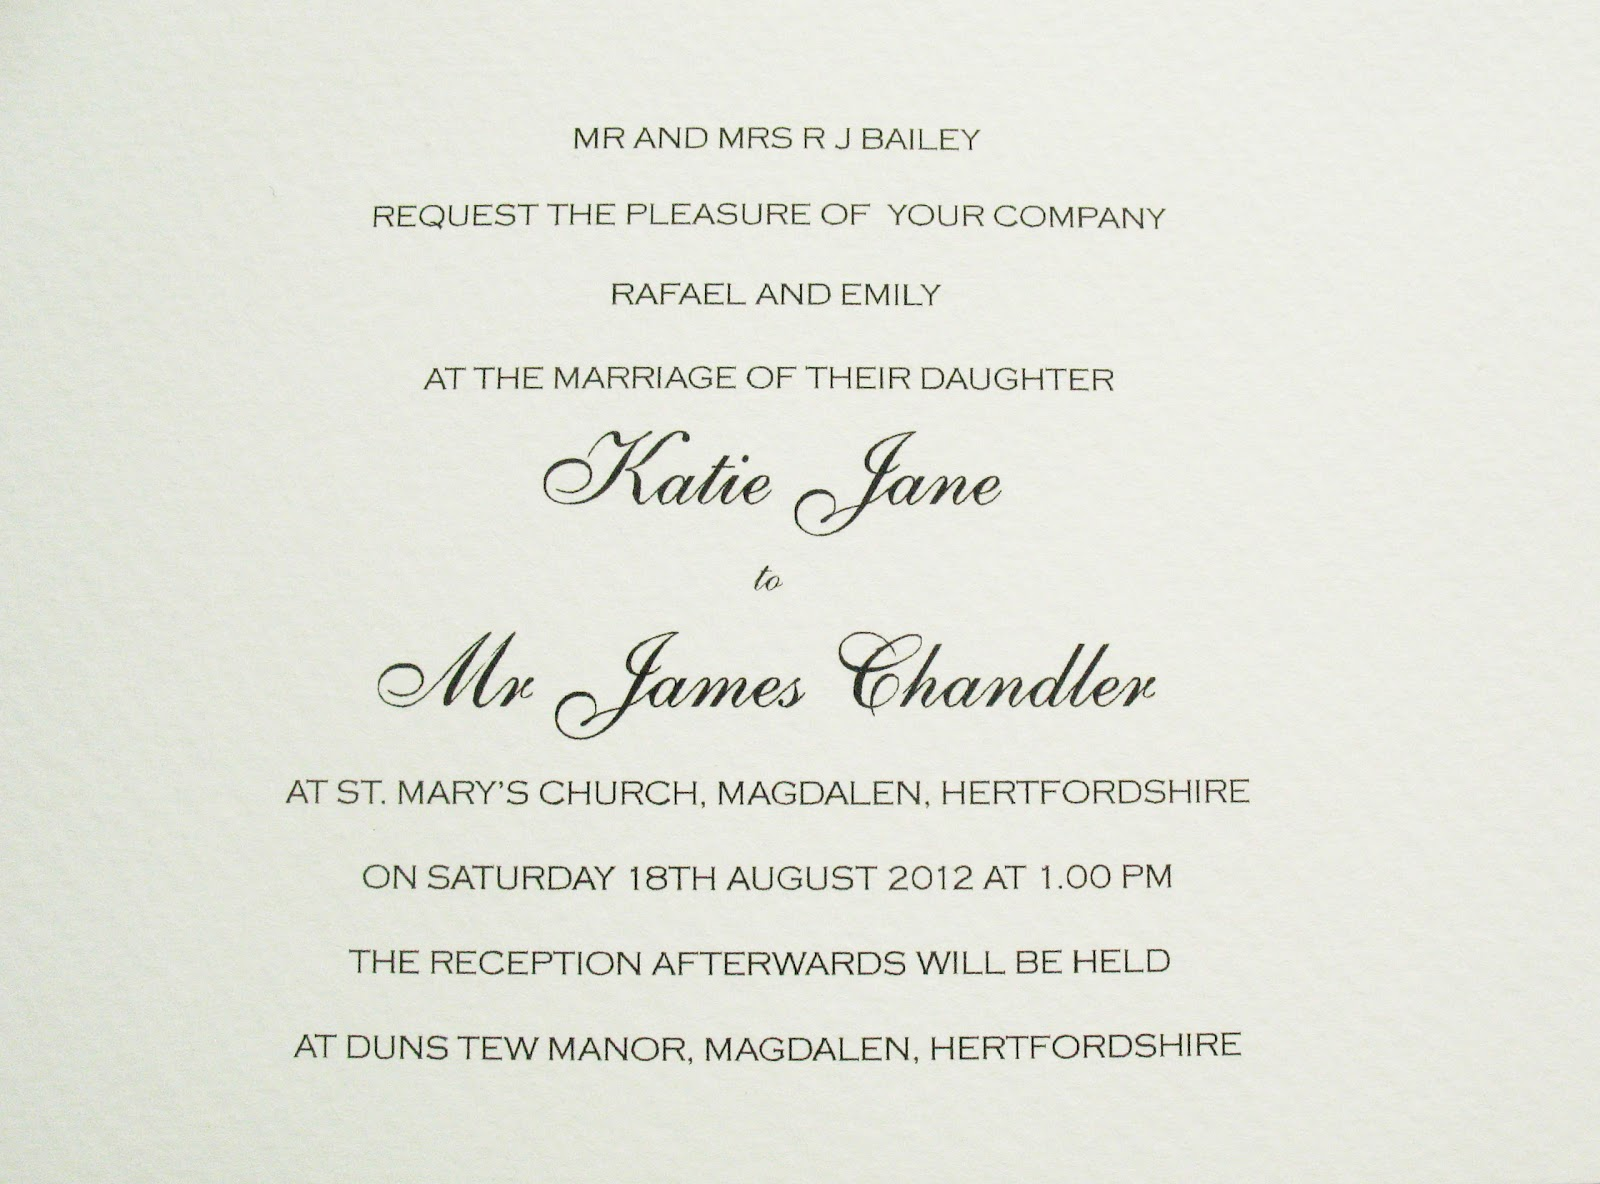 Wedding Invitations Example Text: Inspiration For Weddings, Invitations And Stationery